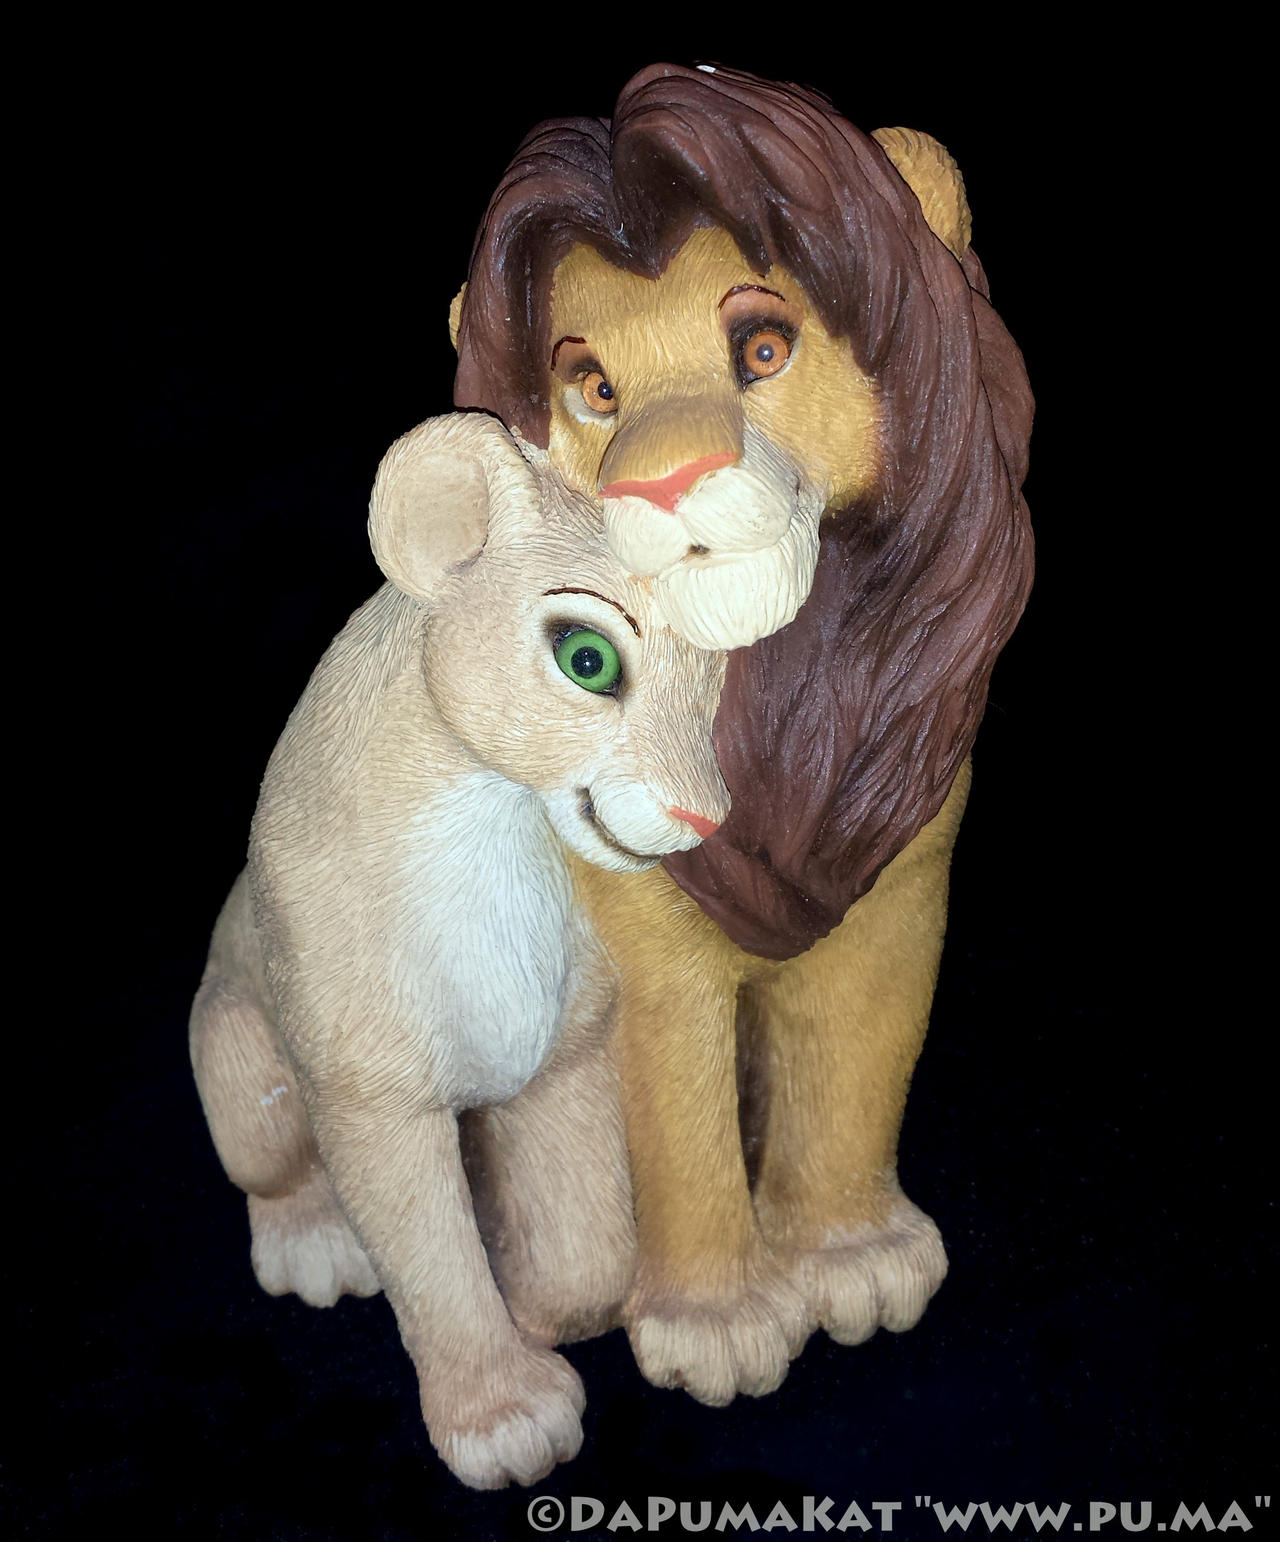 The Lion King - Adult Simba and Nala - Sandra Brue by dapumakat